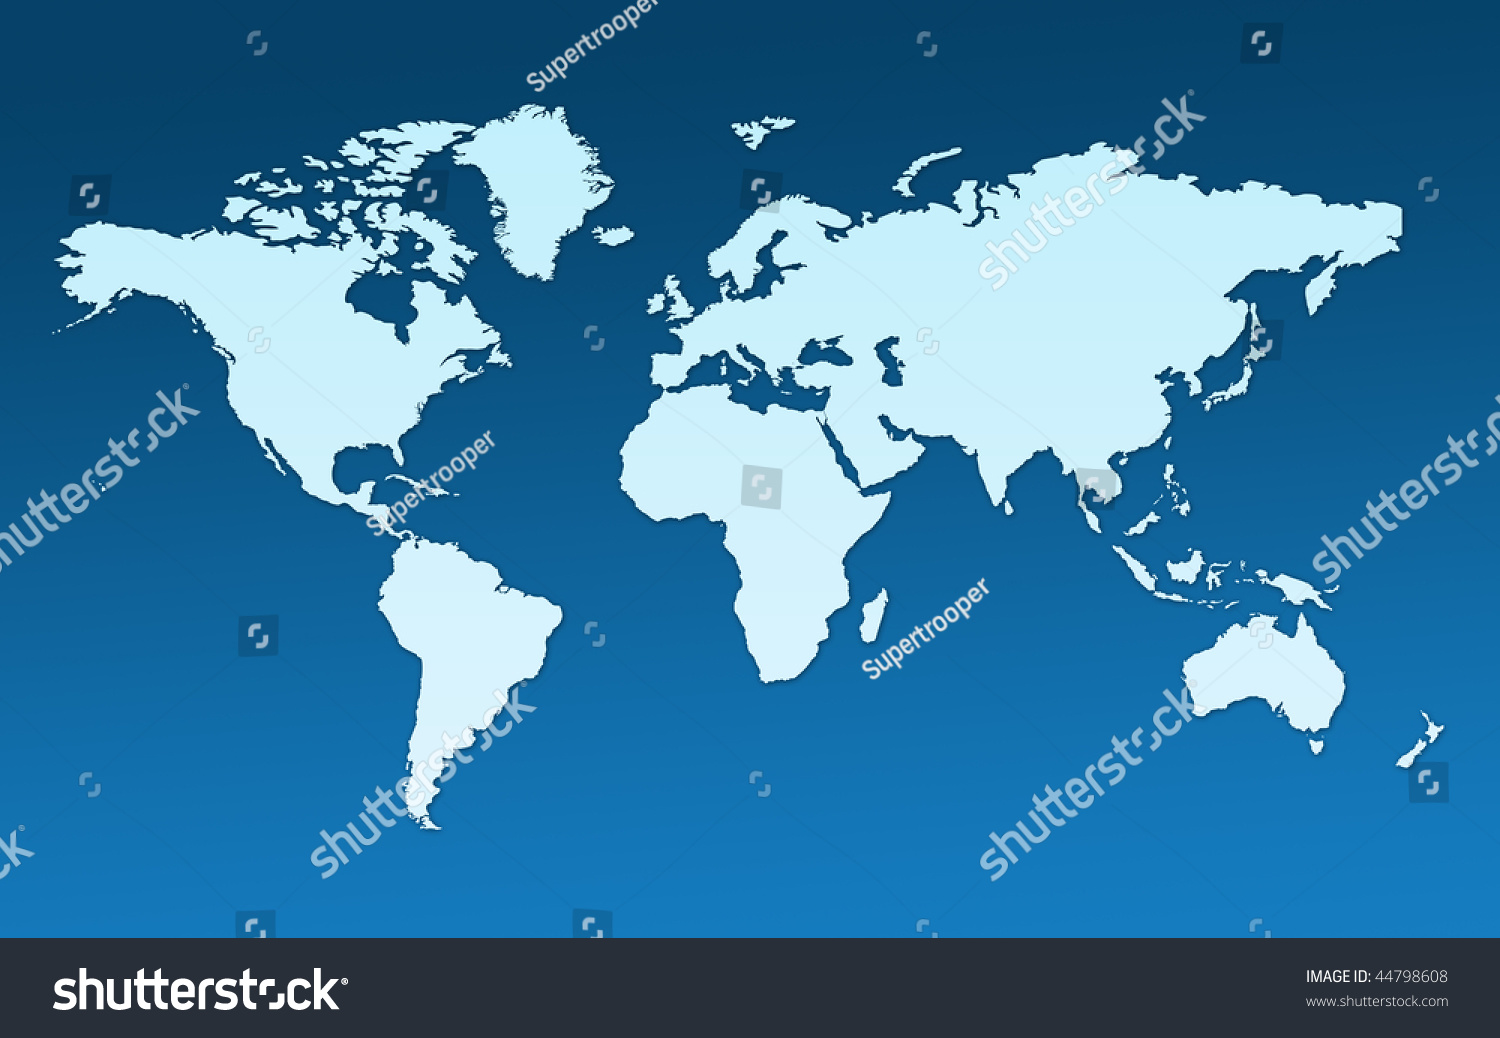 Map Whole World Images All Continents Stock Illustration - World flat map